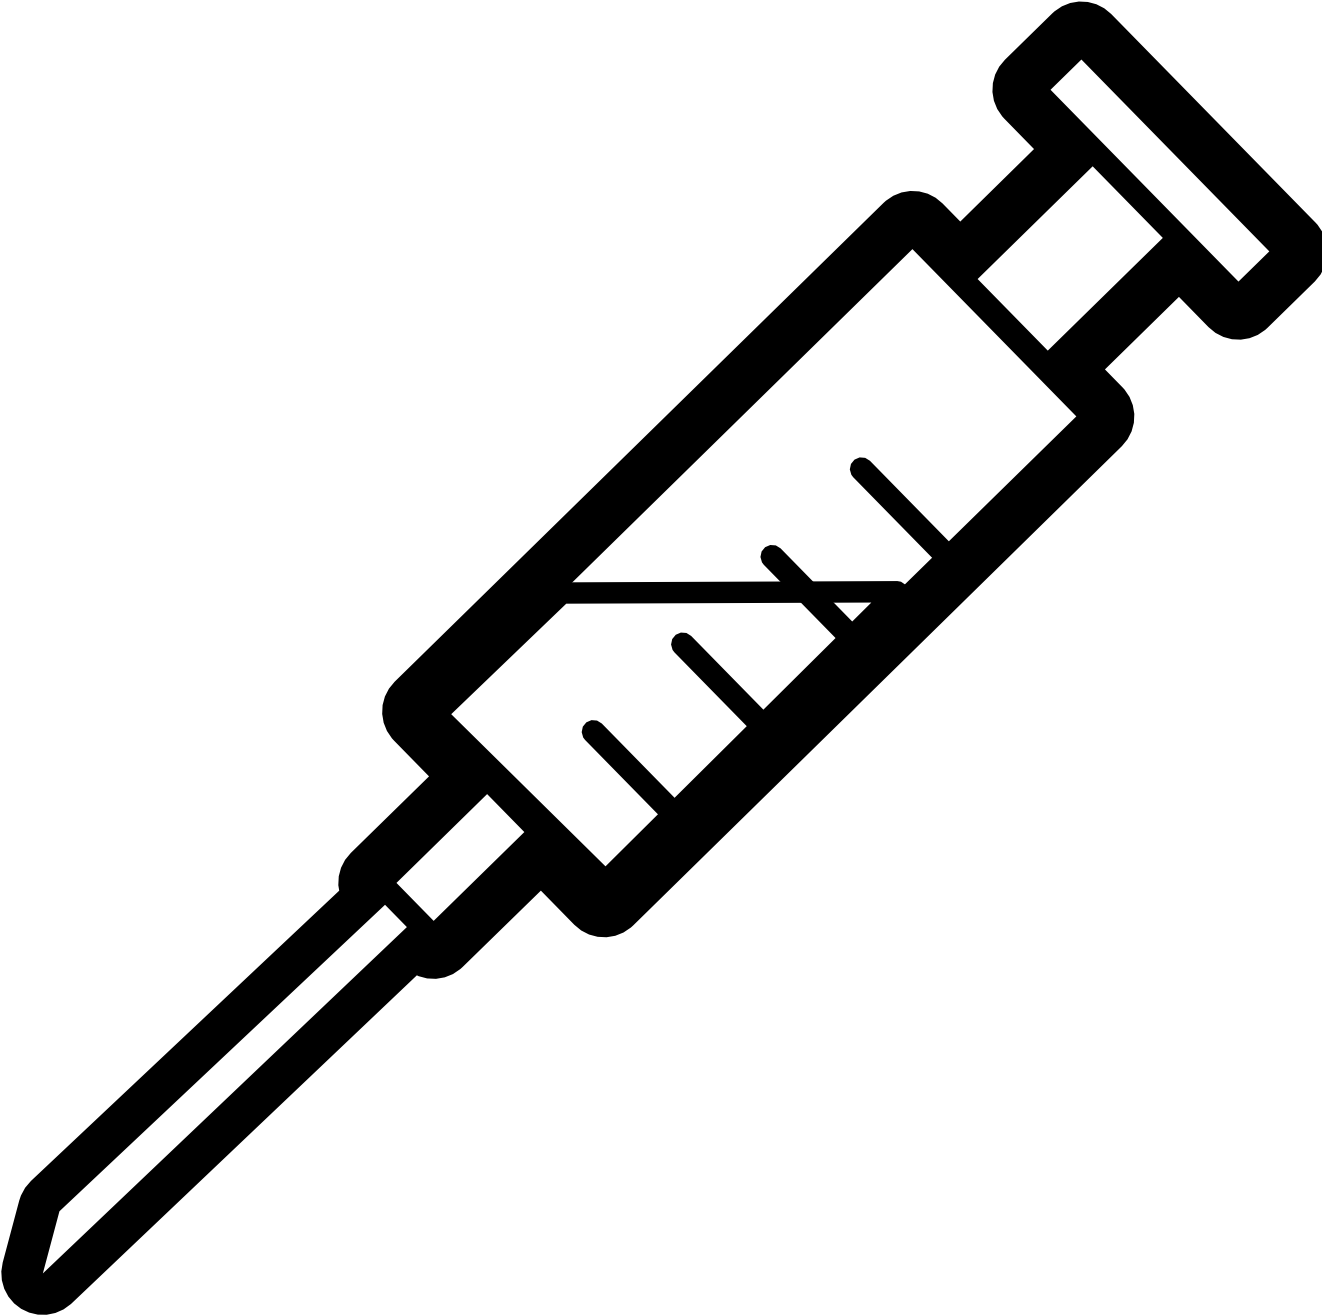 Drawing needle animated. Download clipart png image